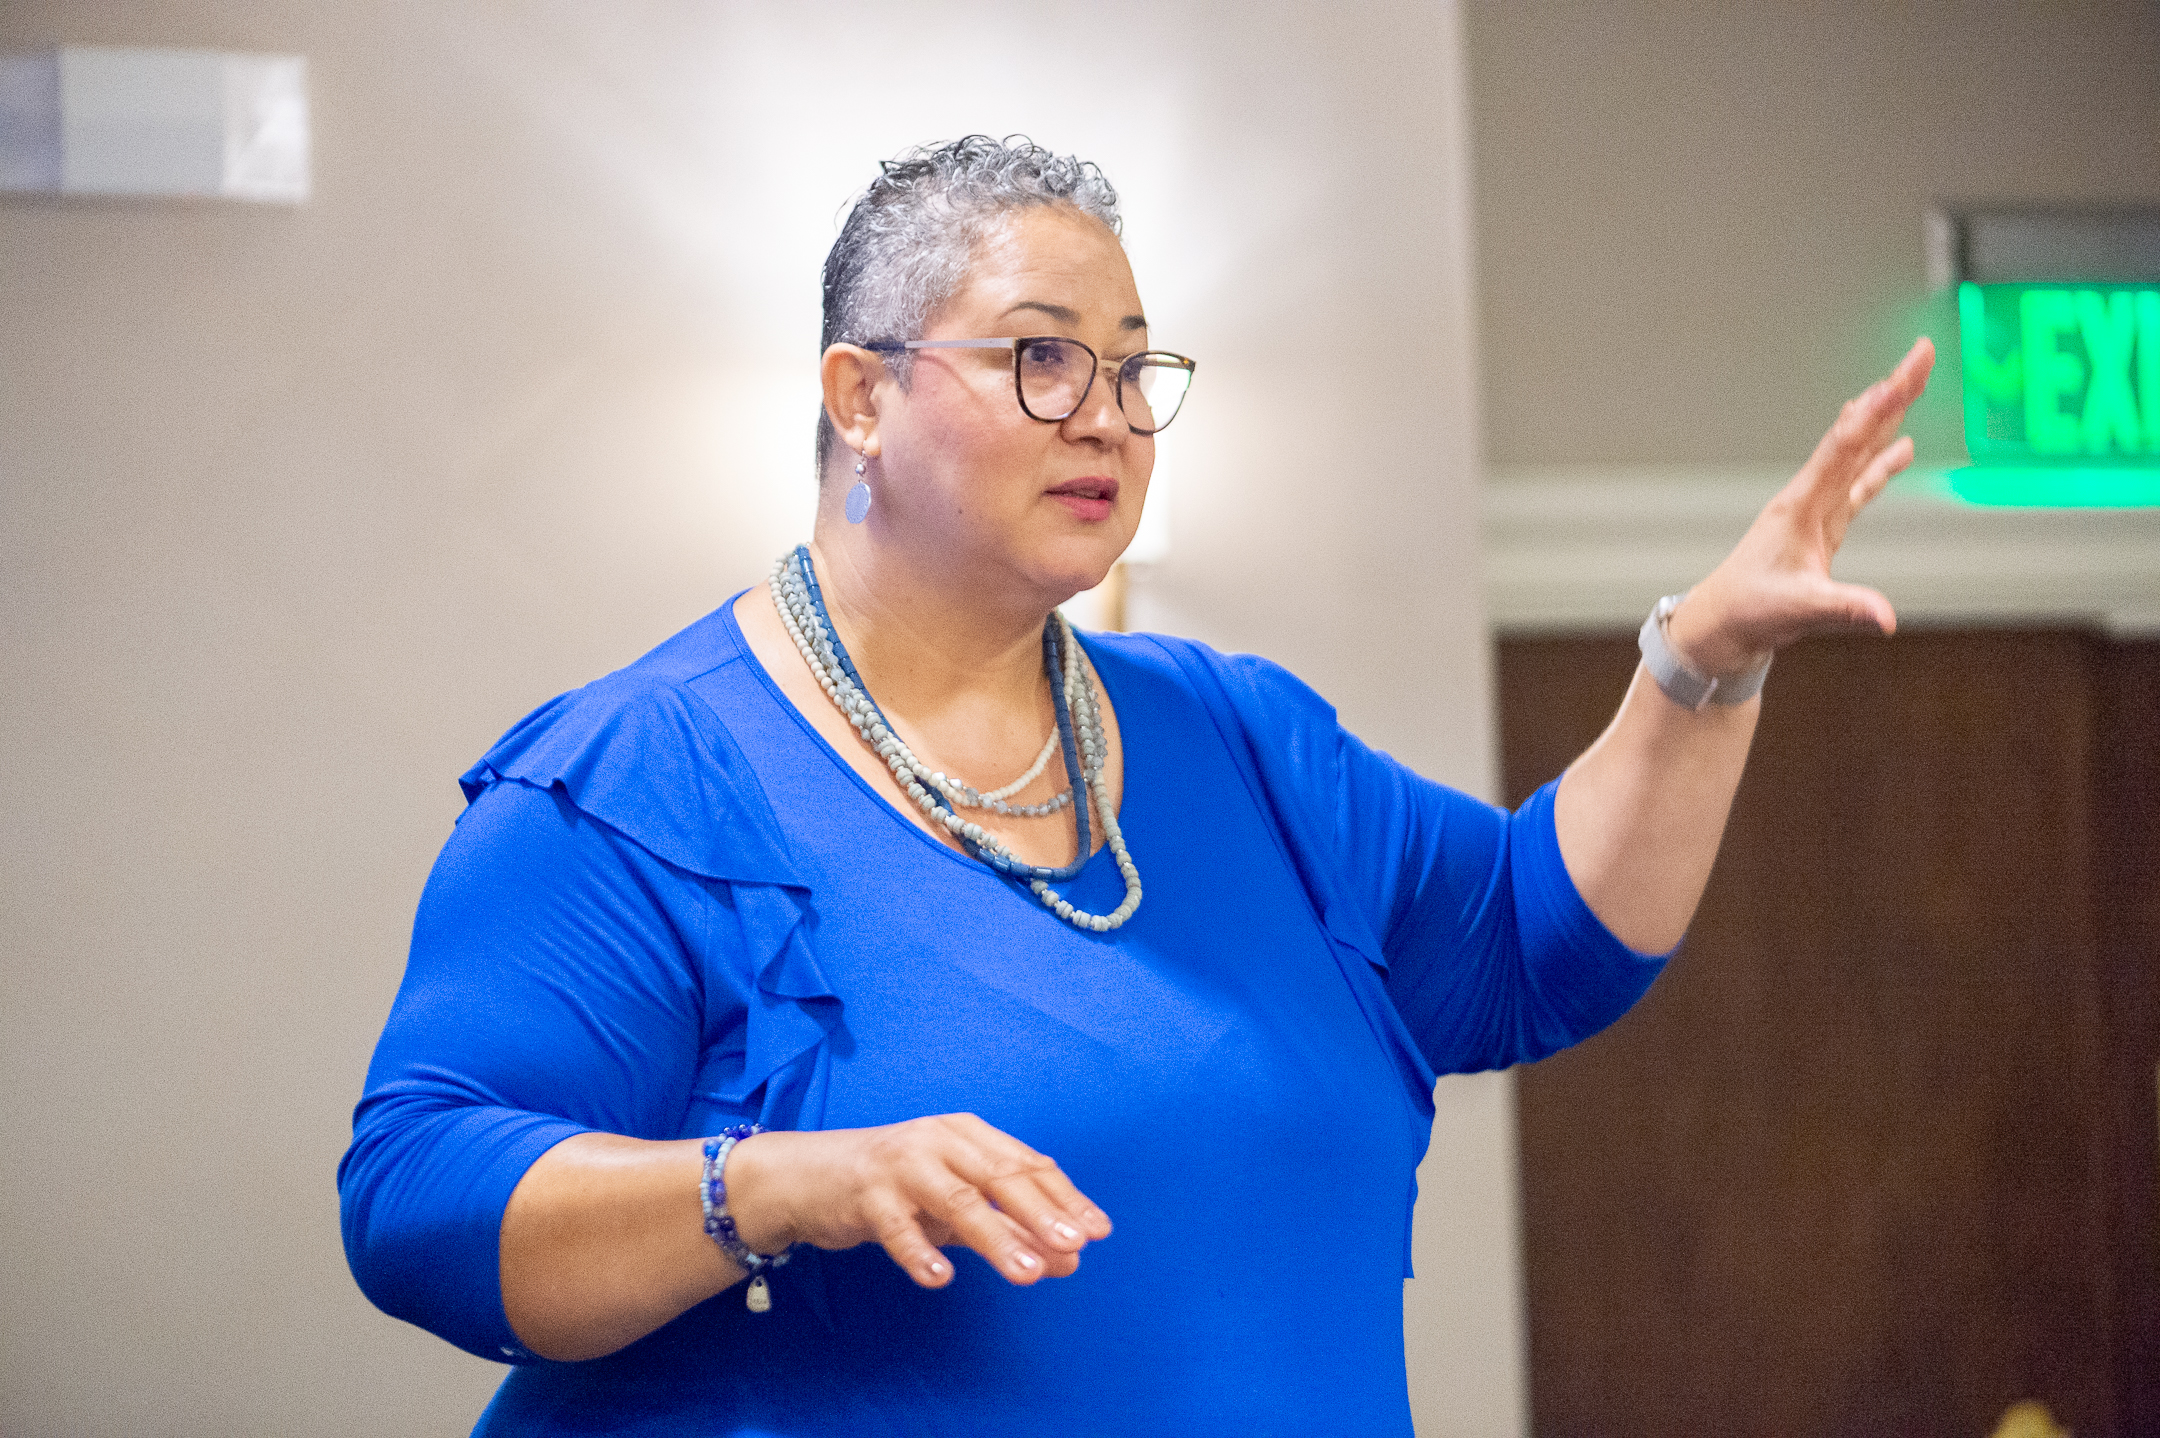 Donna Maria Coles Johnson speaks on day three of the United States Lavender Conference in Charleston, South Carolina.